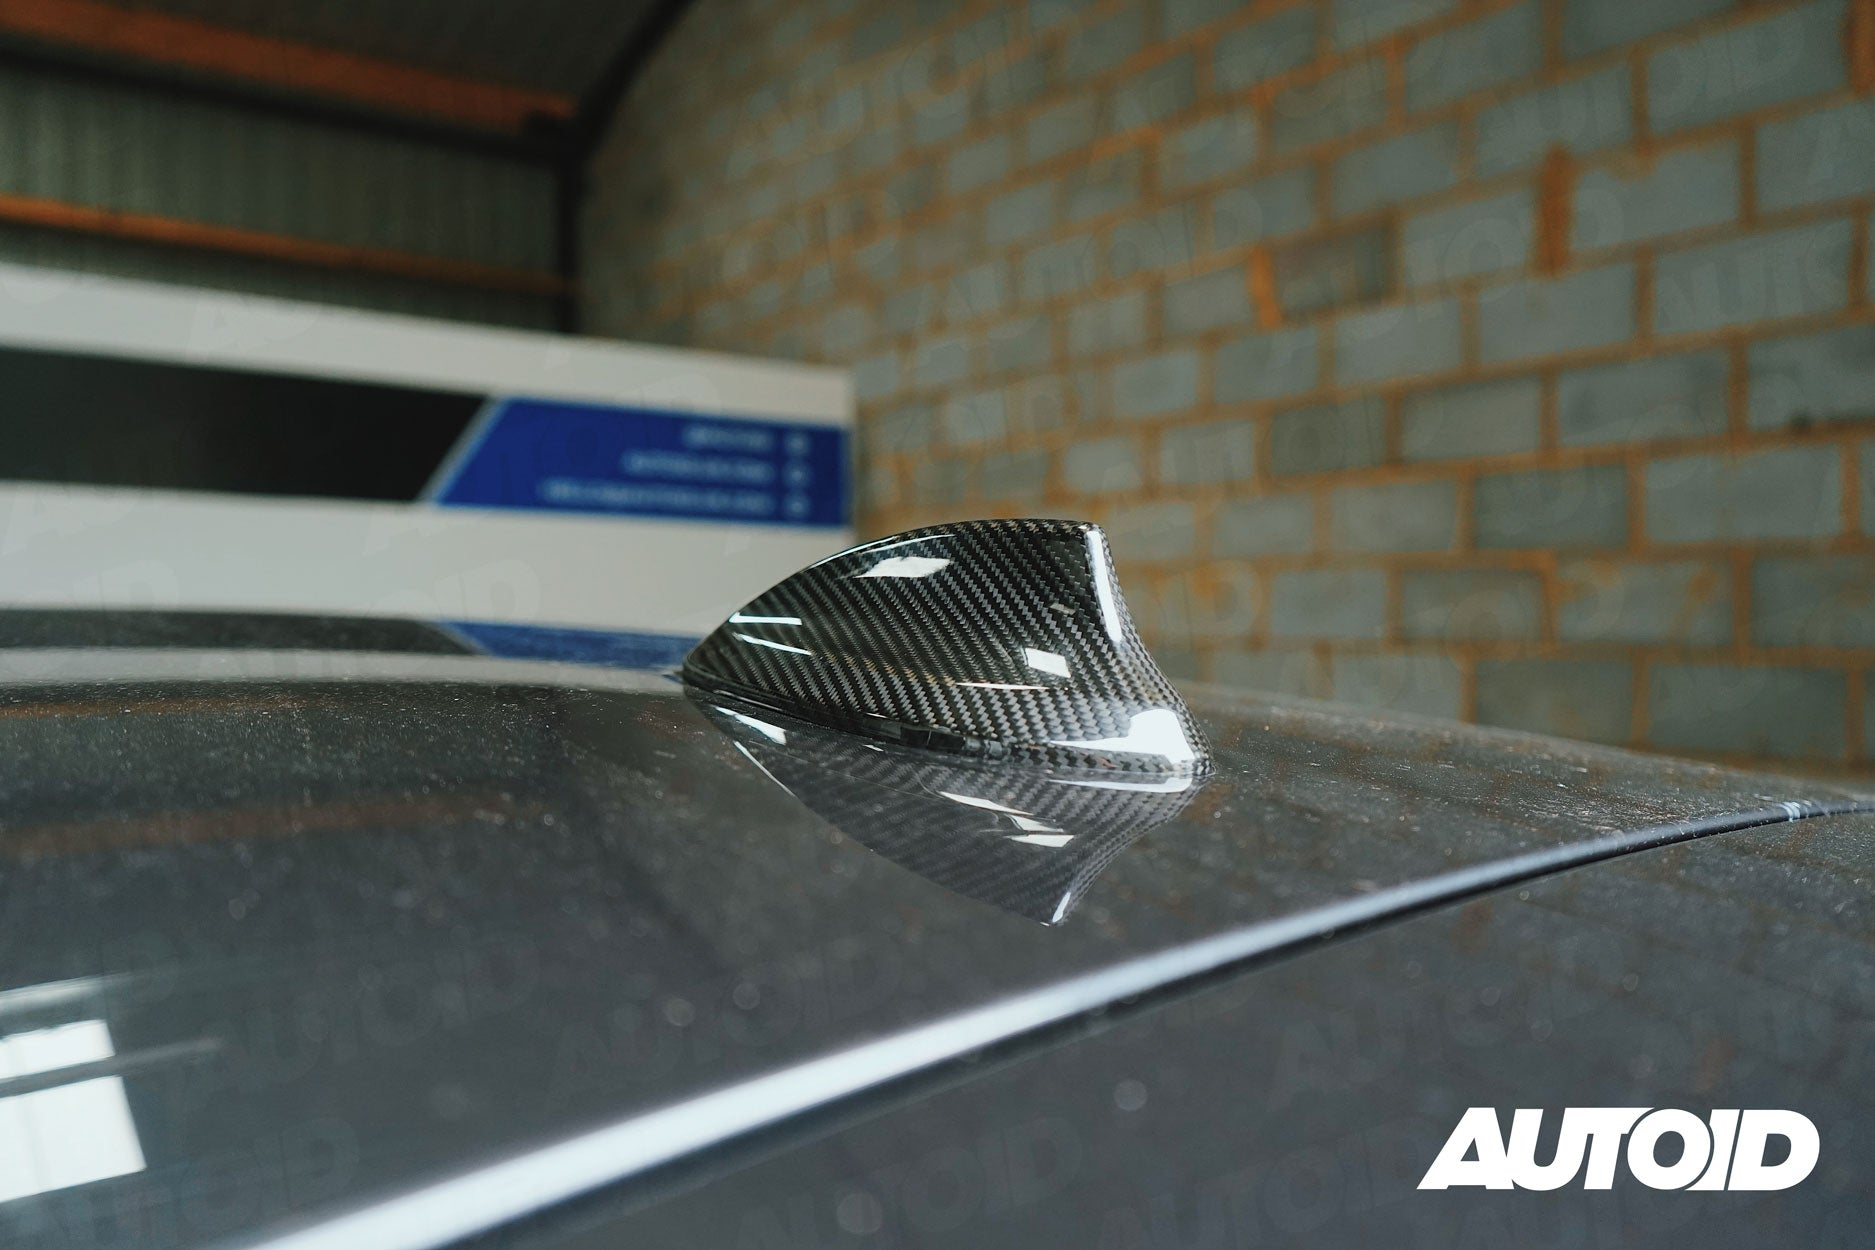 AUTOID Full Carbon Fibre Shark Fin Cover for BMW (Various Models)